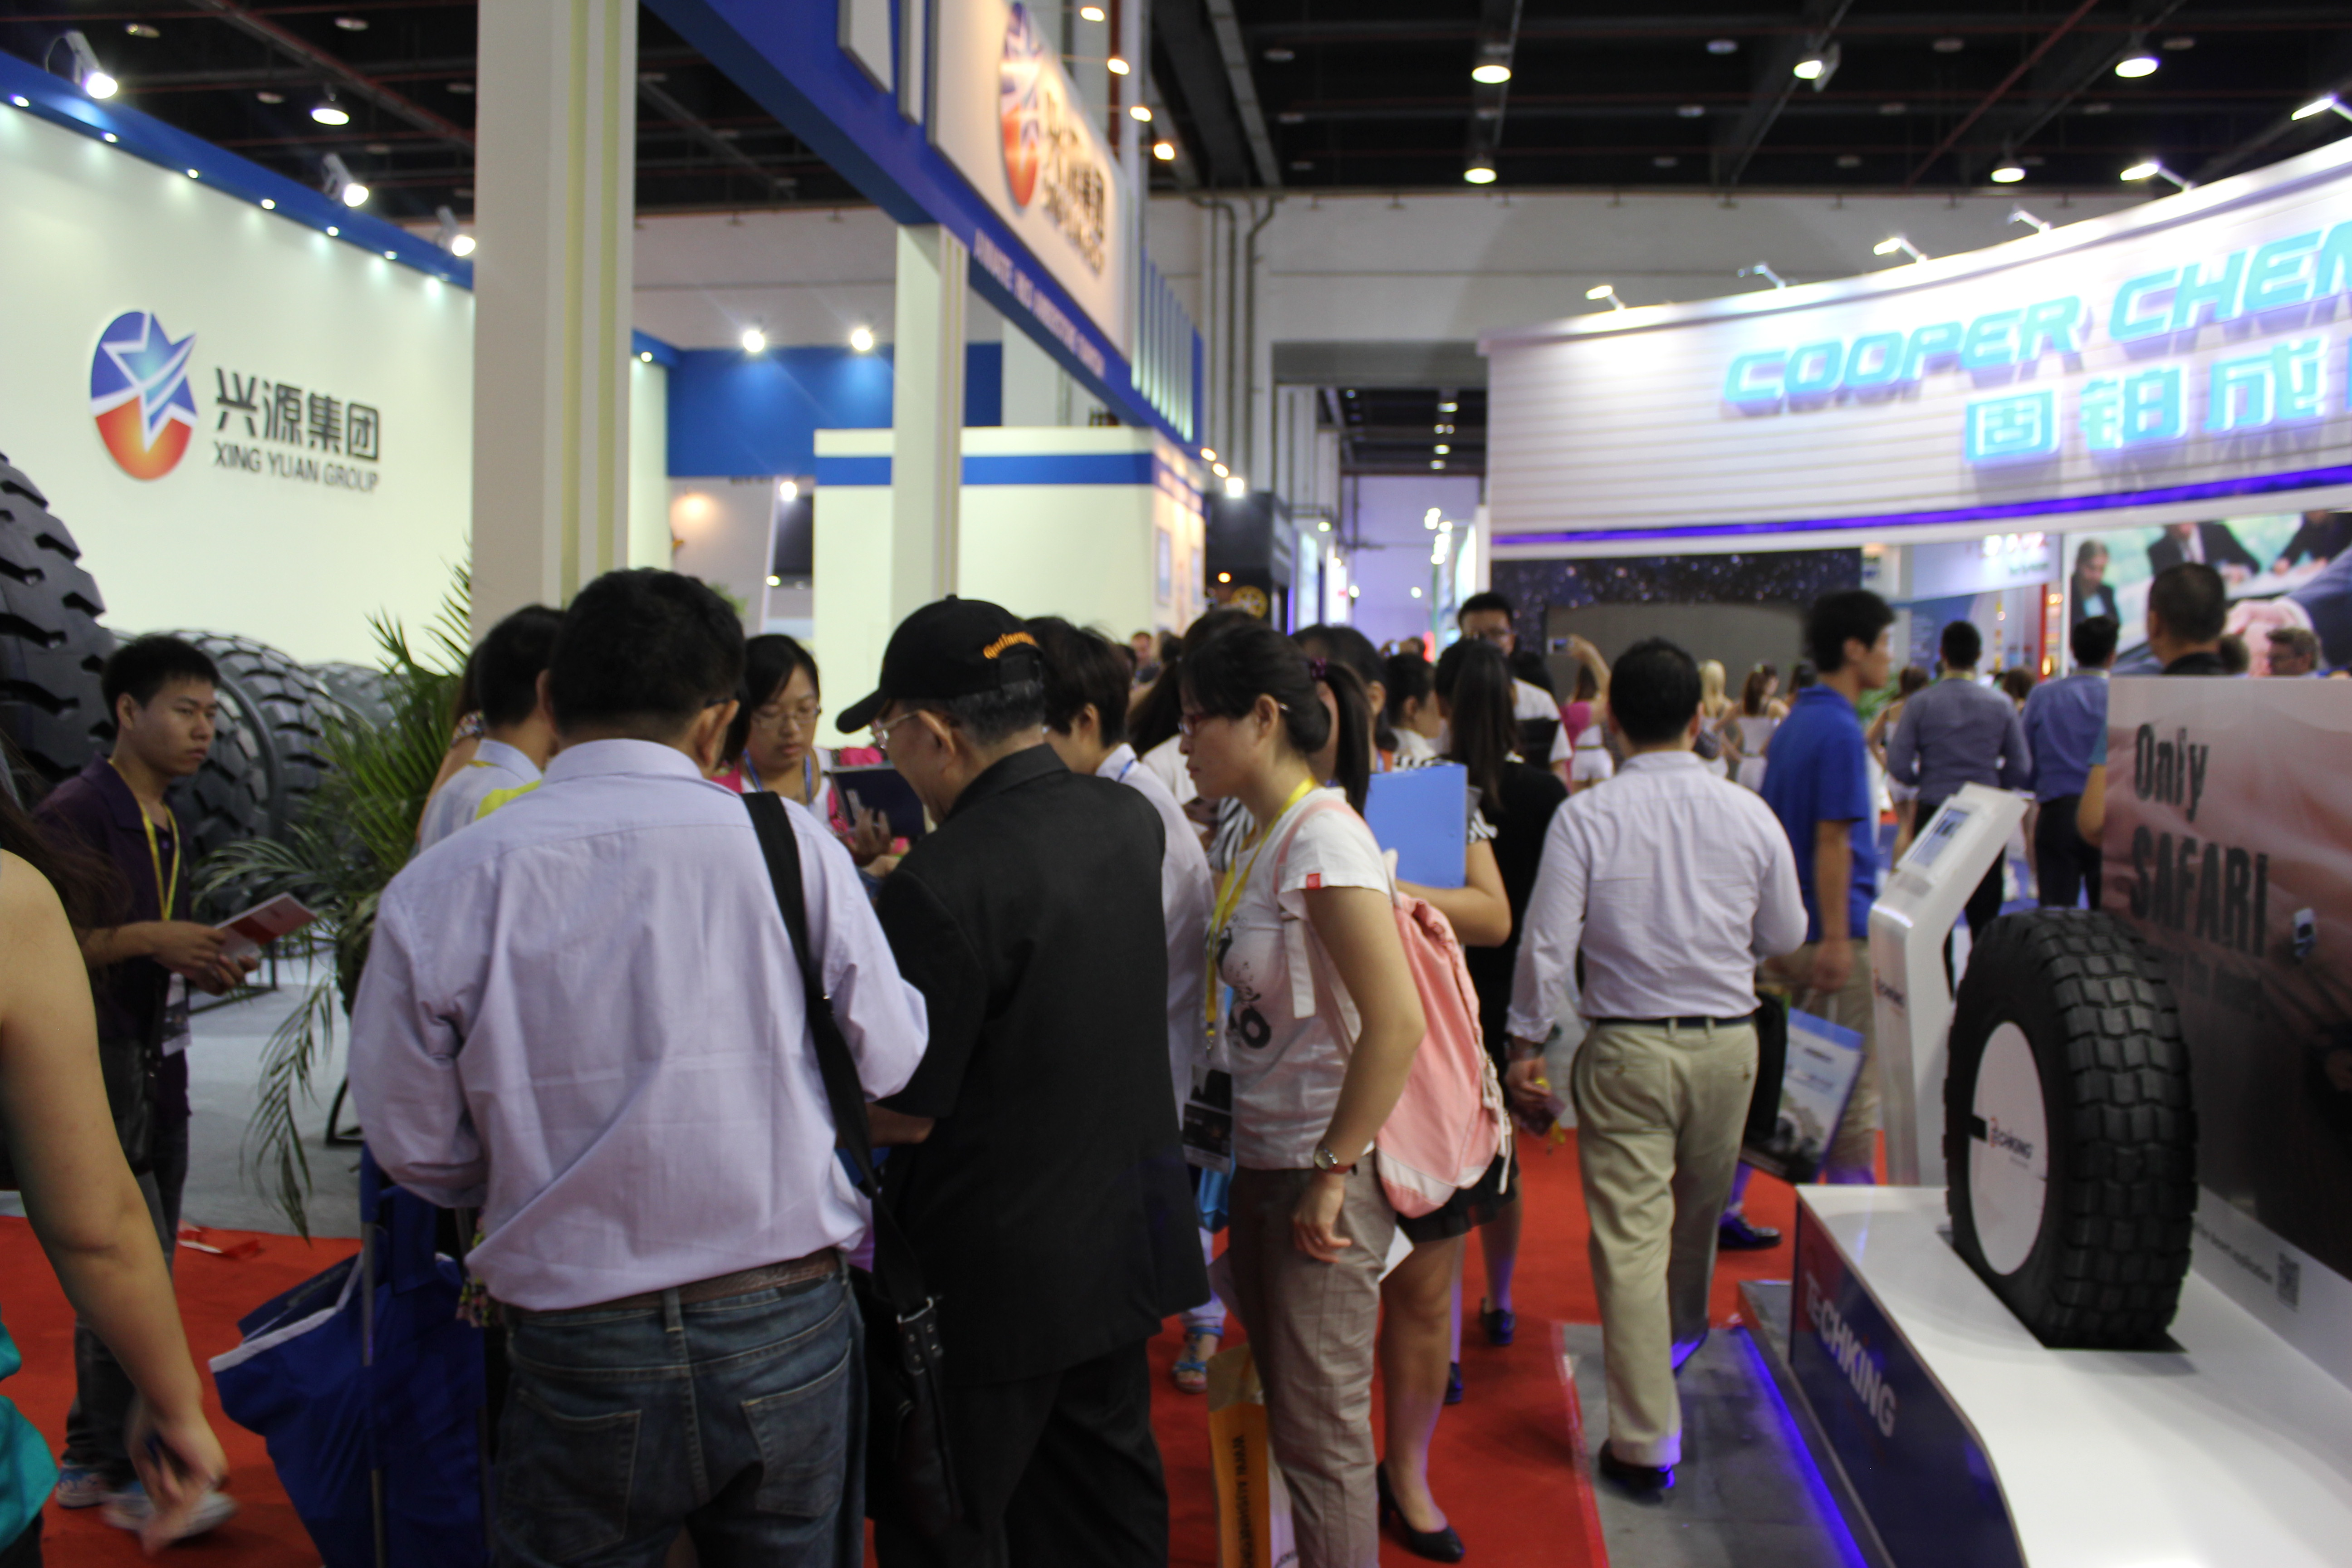 More than 7,000 attend China tire show